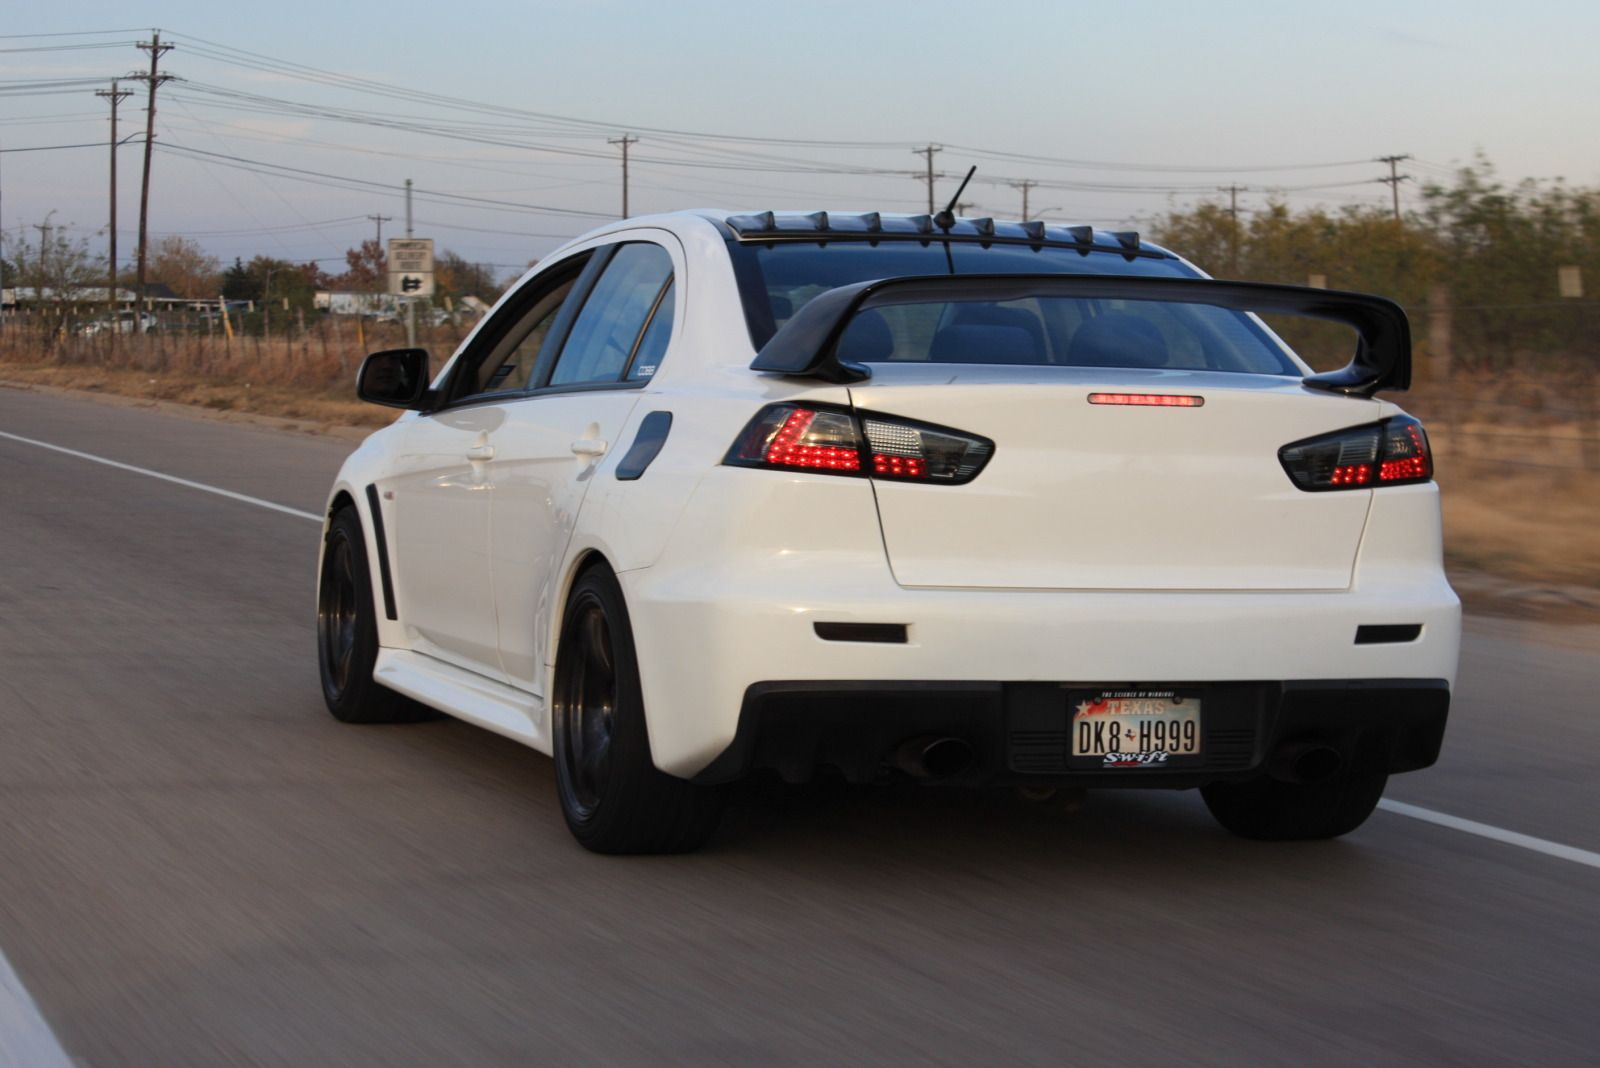 Official wicked white evo x picture thread page 134 evolutionm net